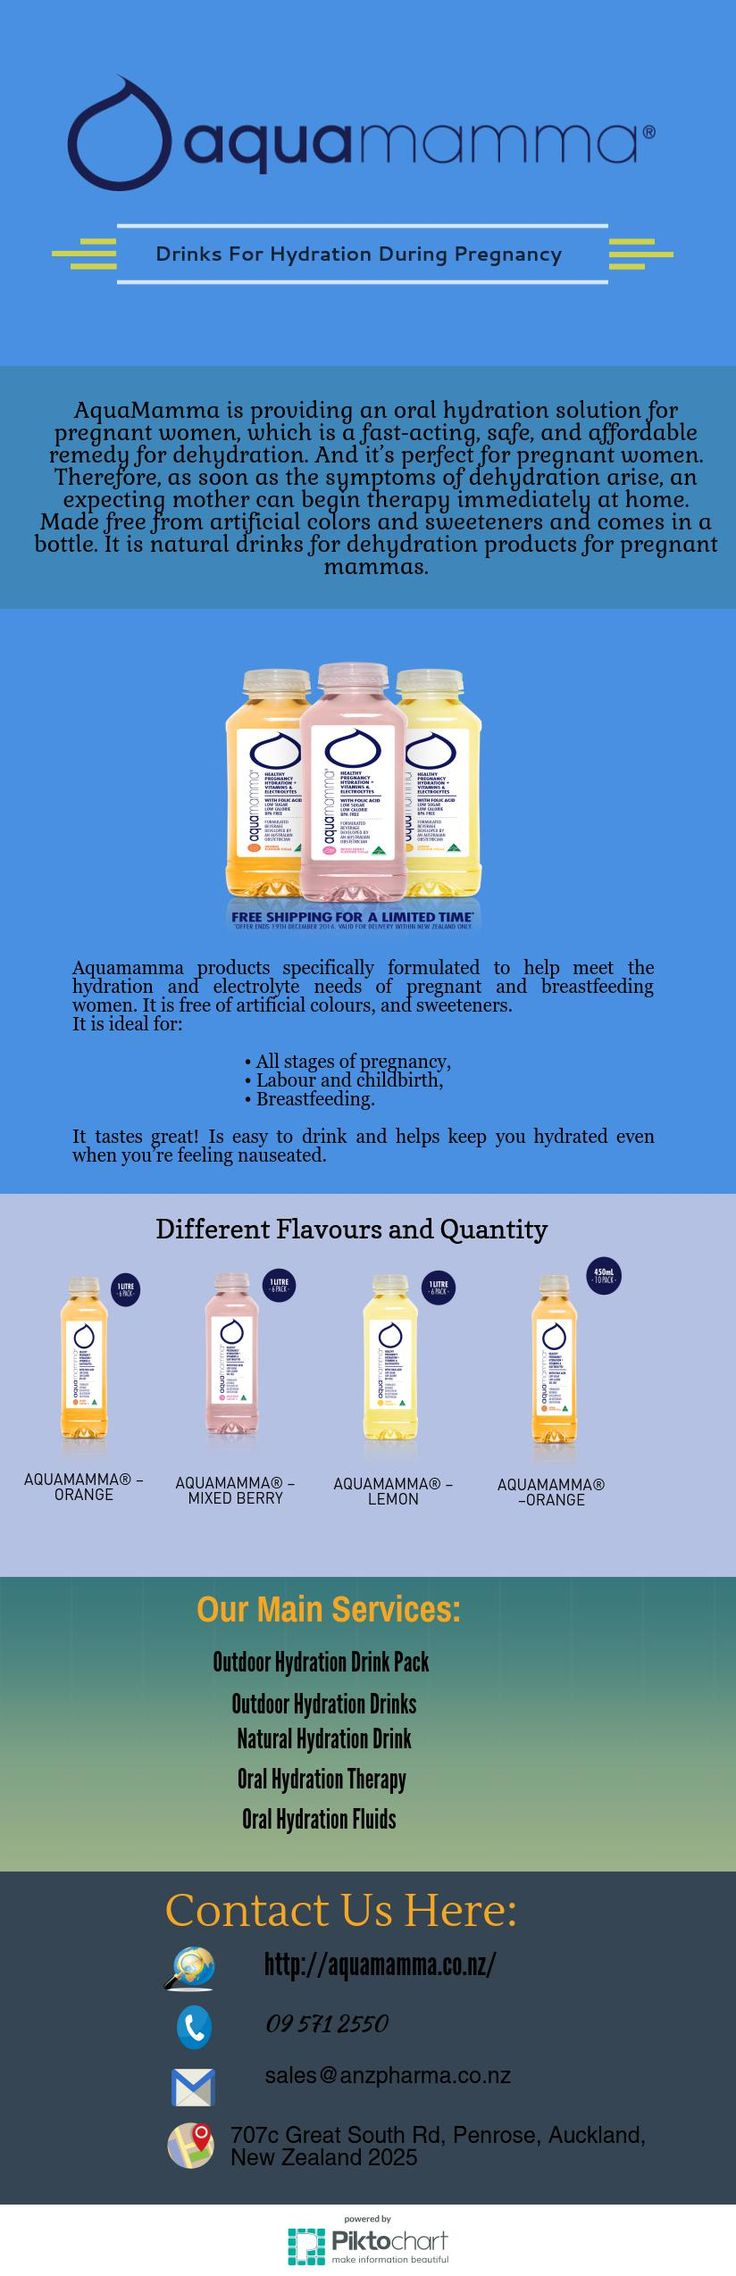 Aquamamma® specifically formulated healthy hydration + vitamins, electrolytes drinks with variety of delicious flavours.